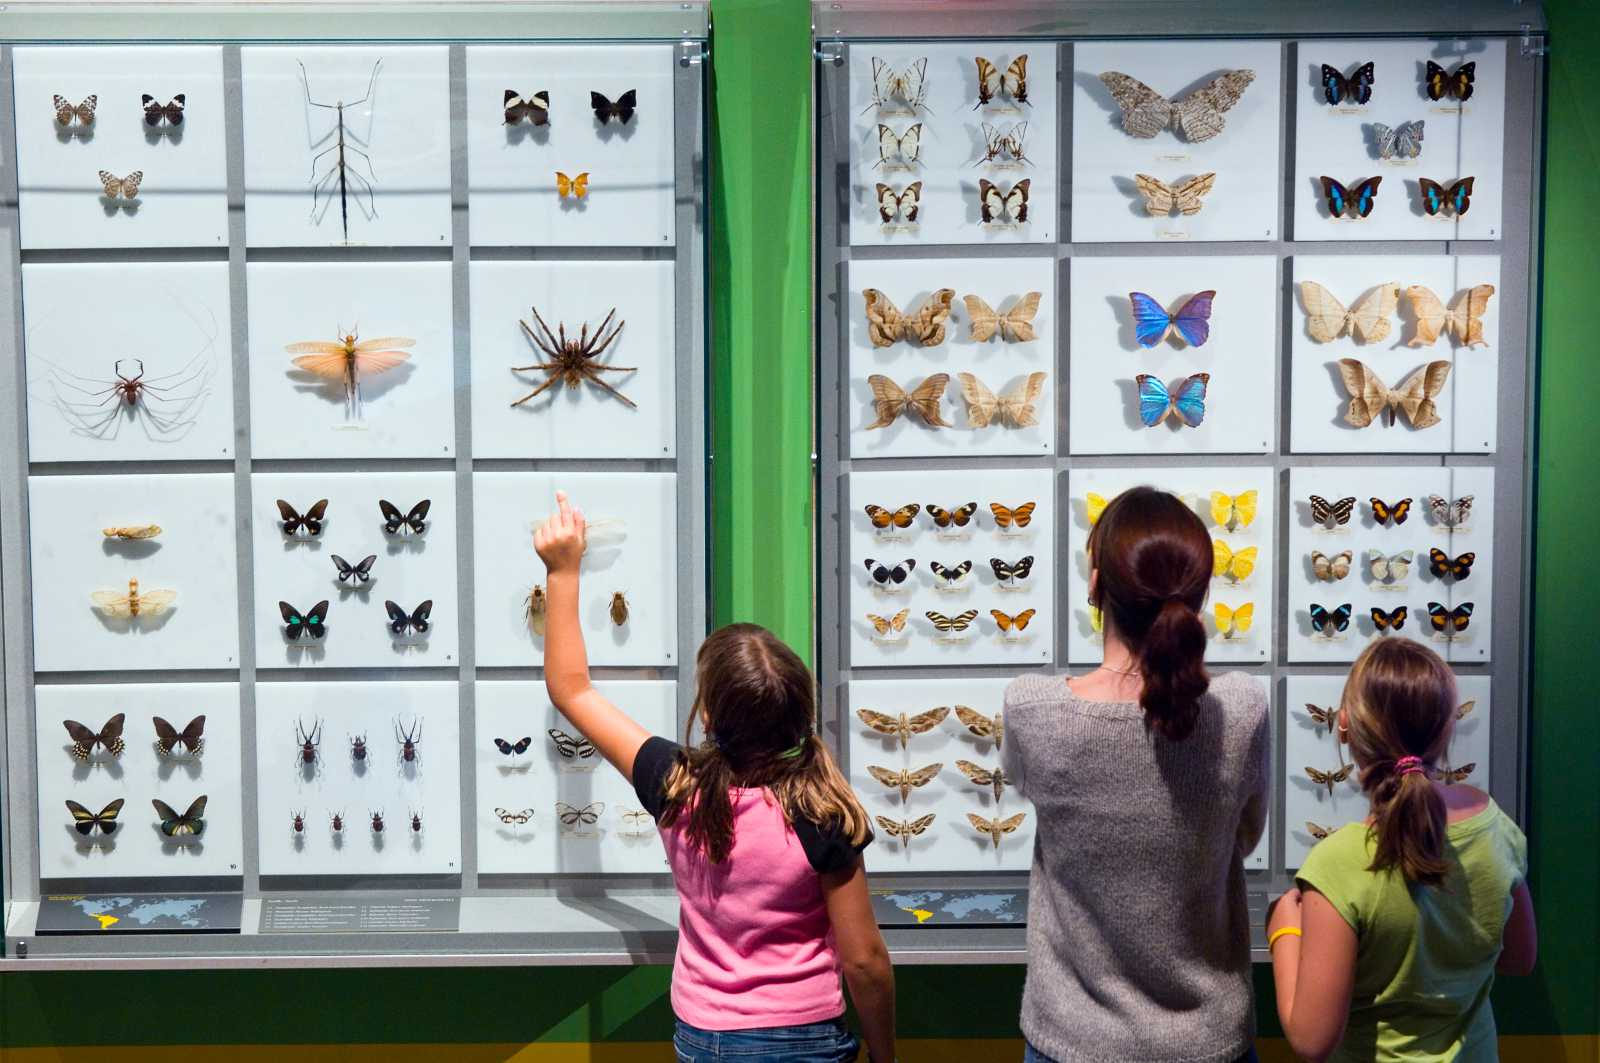 Montreal's top 15 museums include the Insectarium.